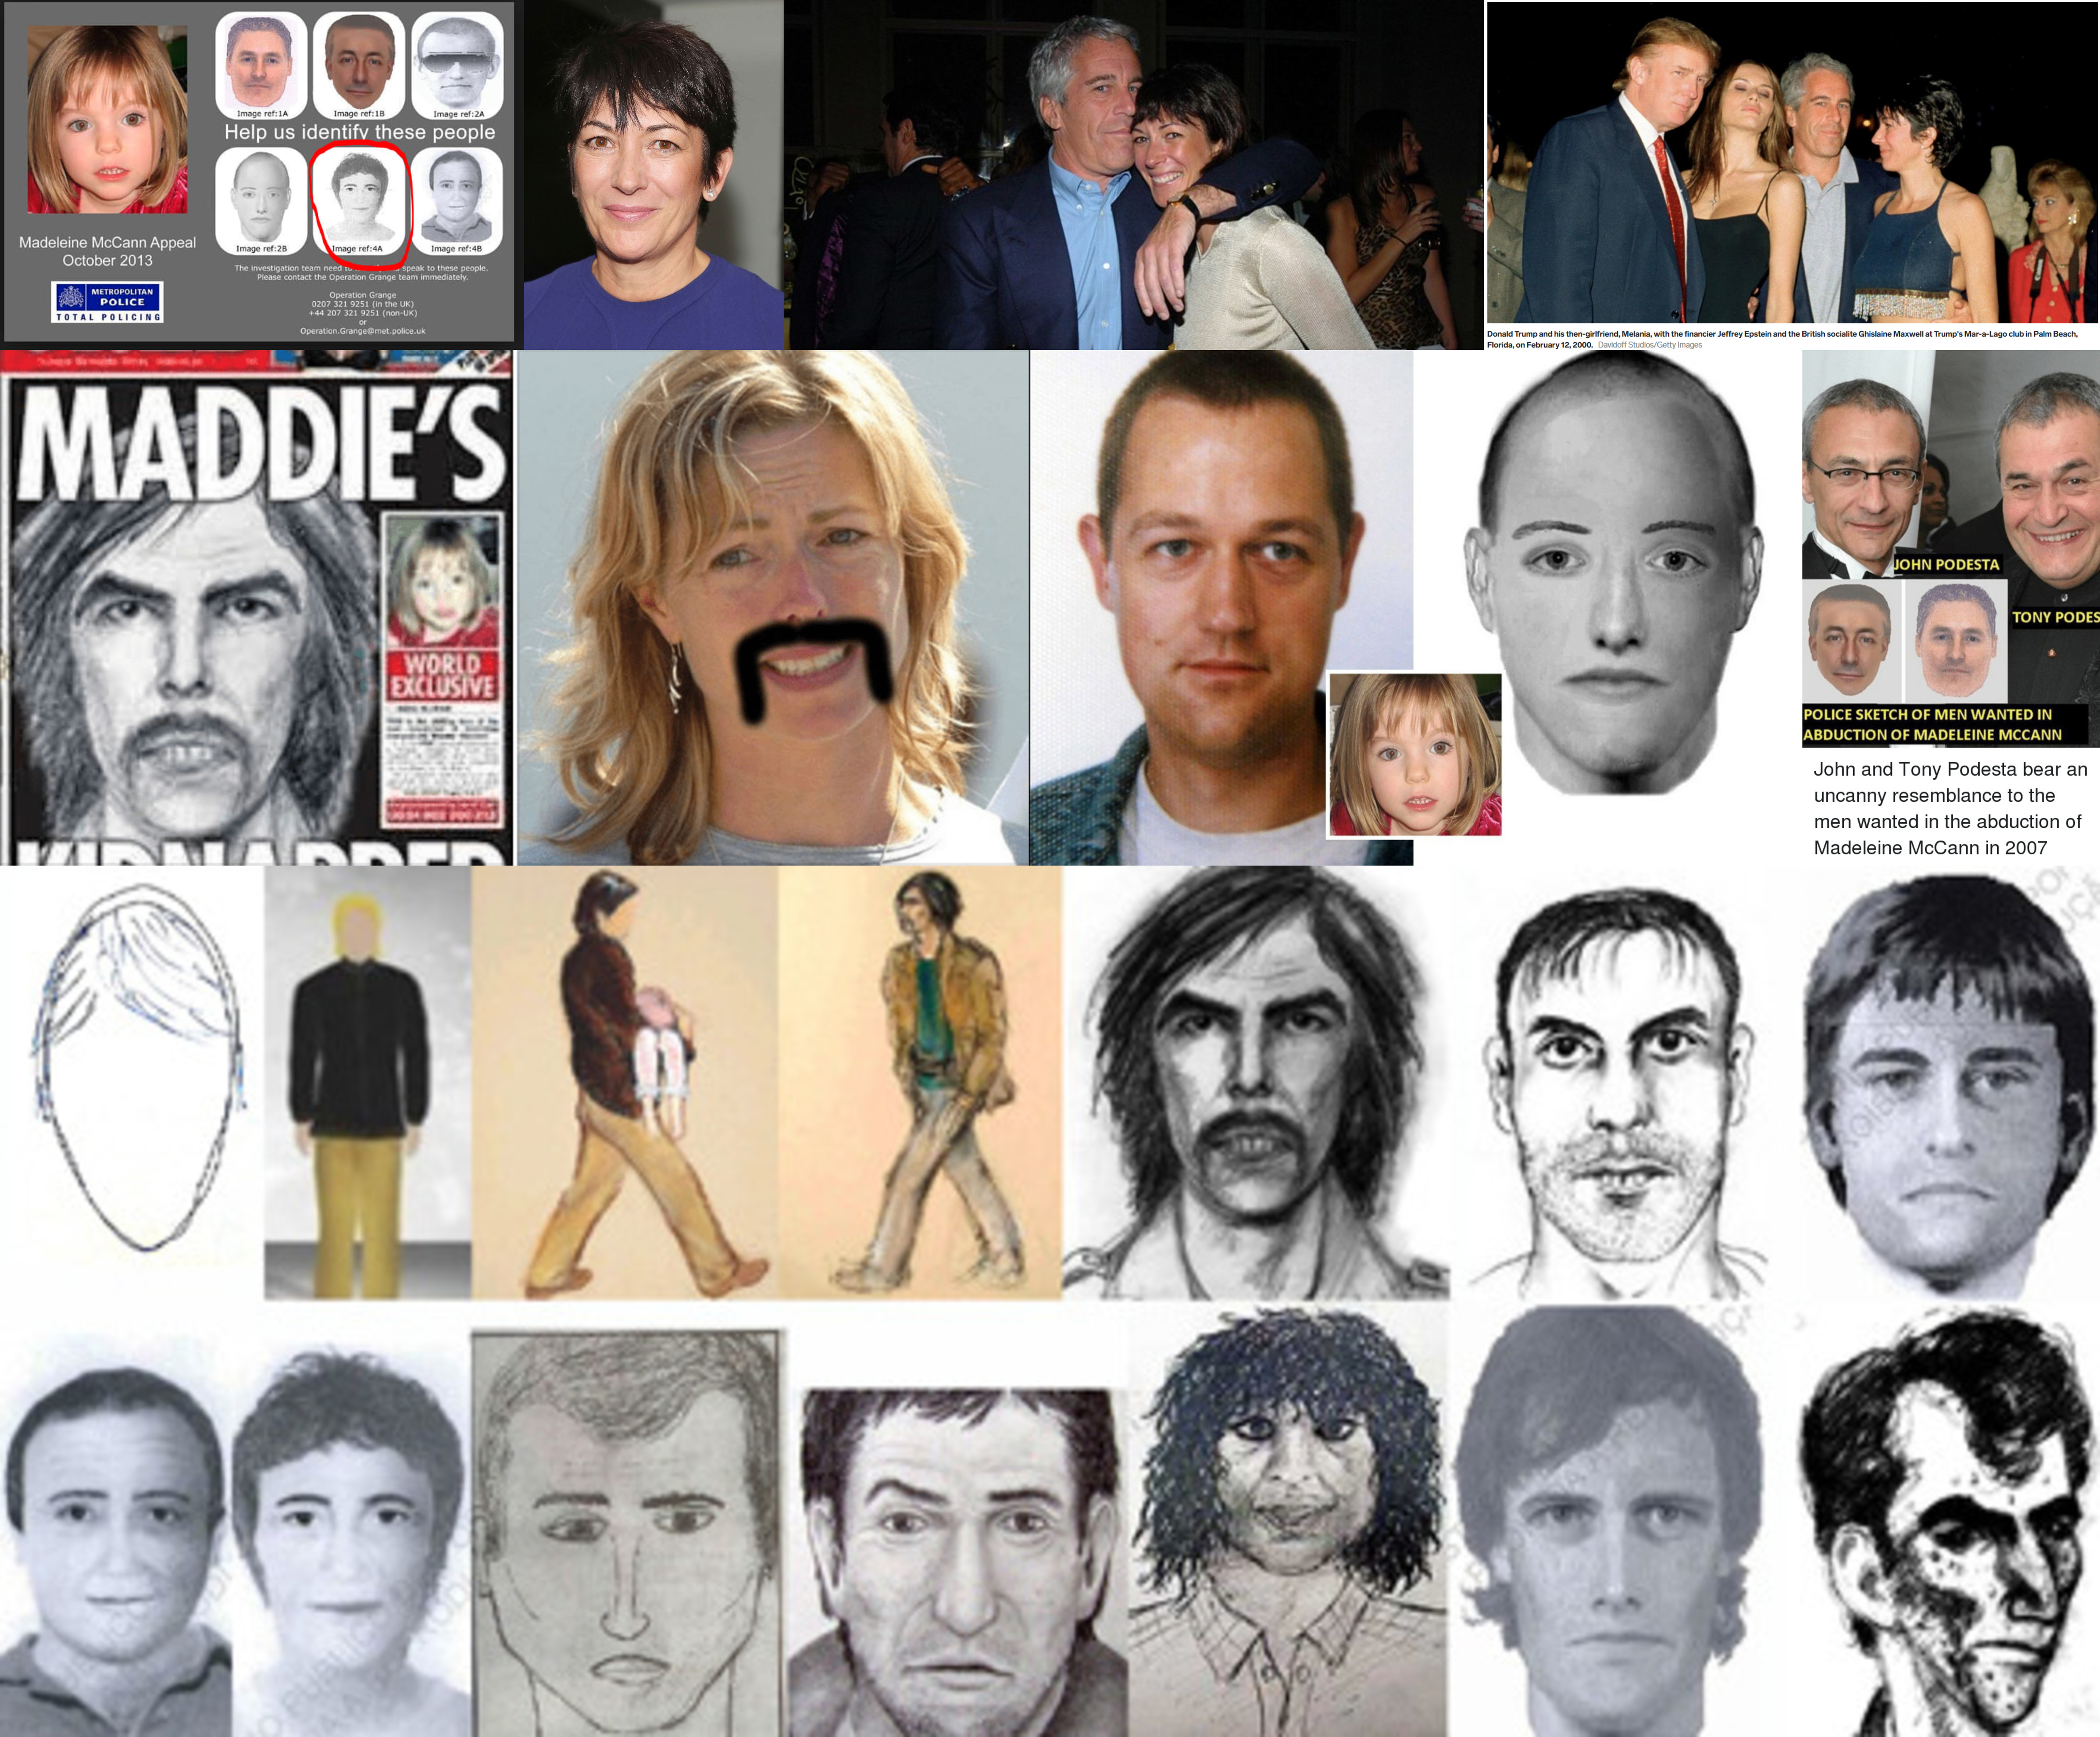 Look at these images and tell me this is not a game show. Ghislaine Maxwell's Madeleine McCann